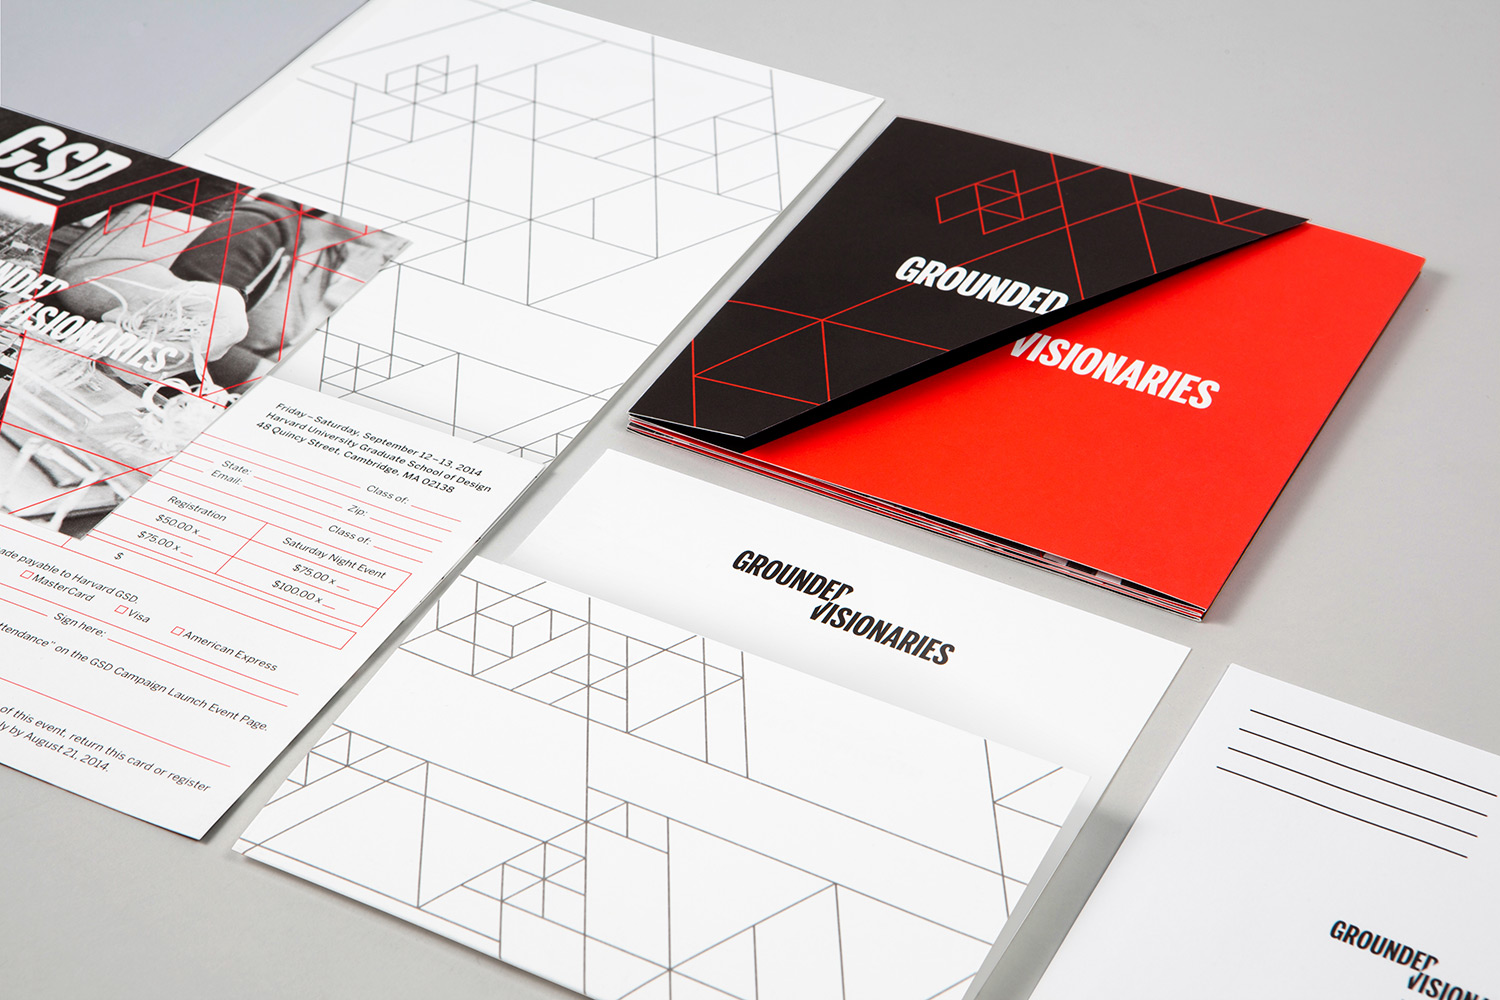 benjamin-lory-groundedvisionaries-stationery1